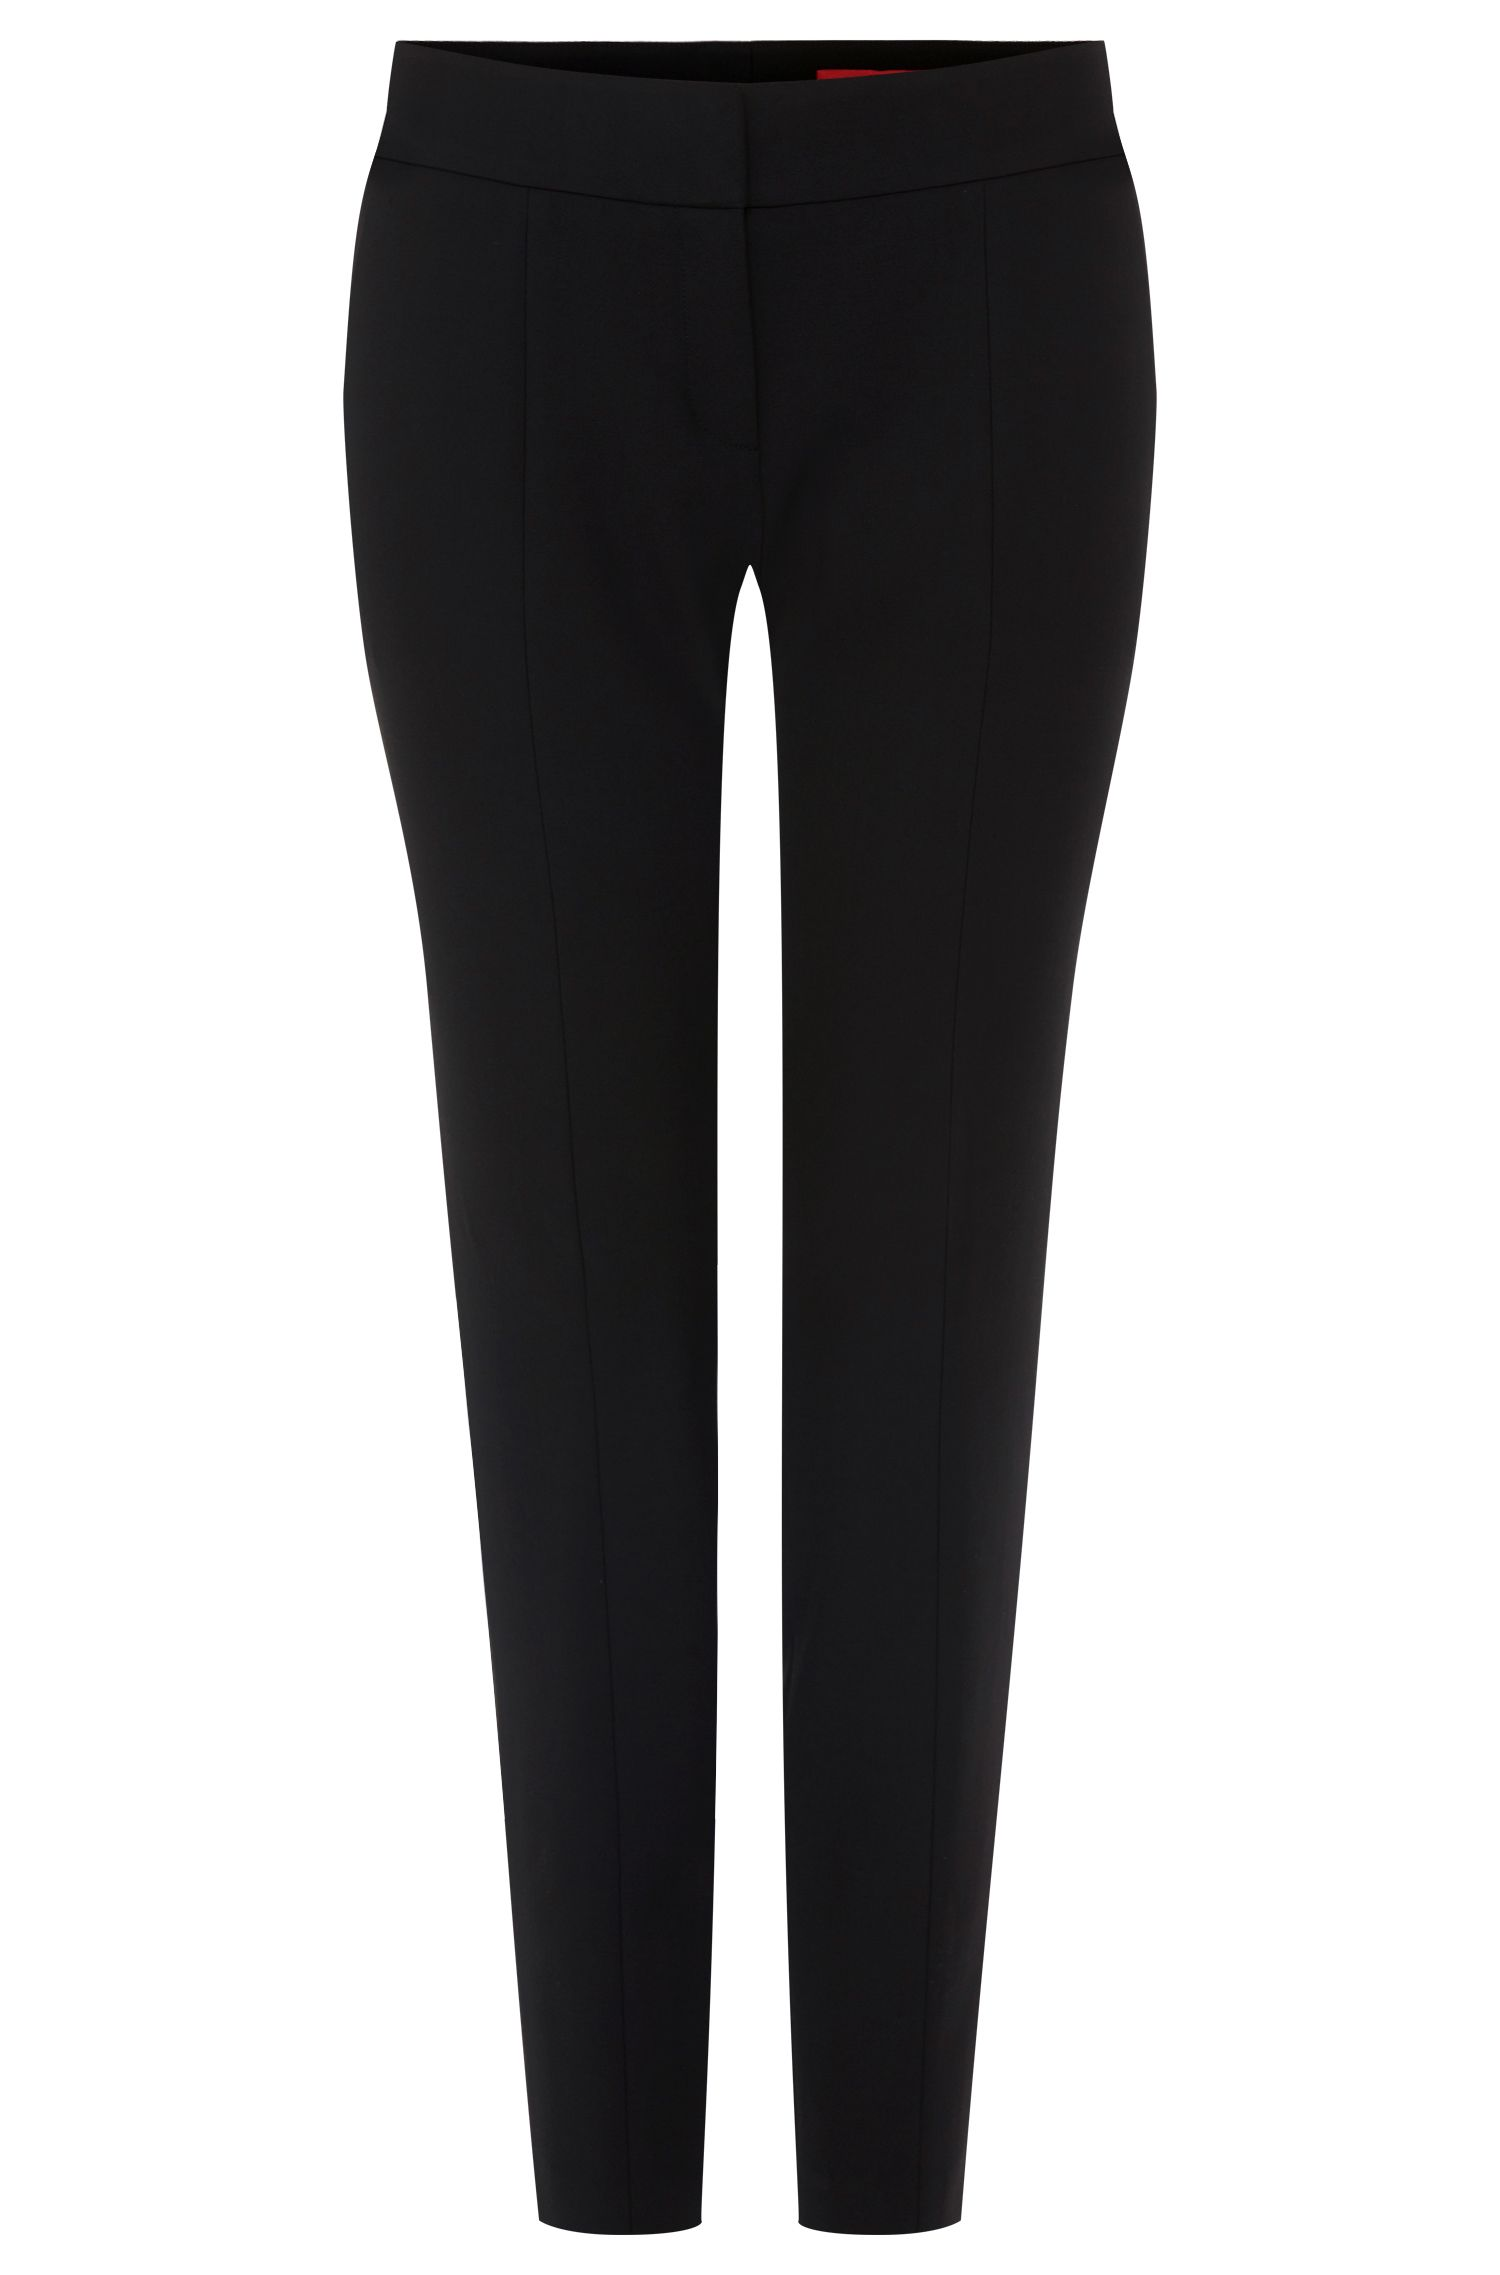 'Hevas' | Stretch Cotton Blend Trousers